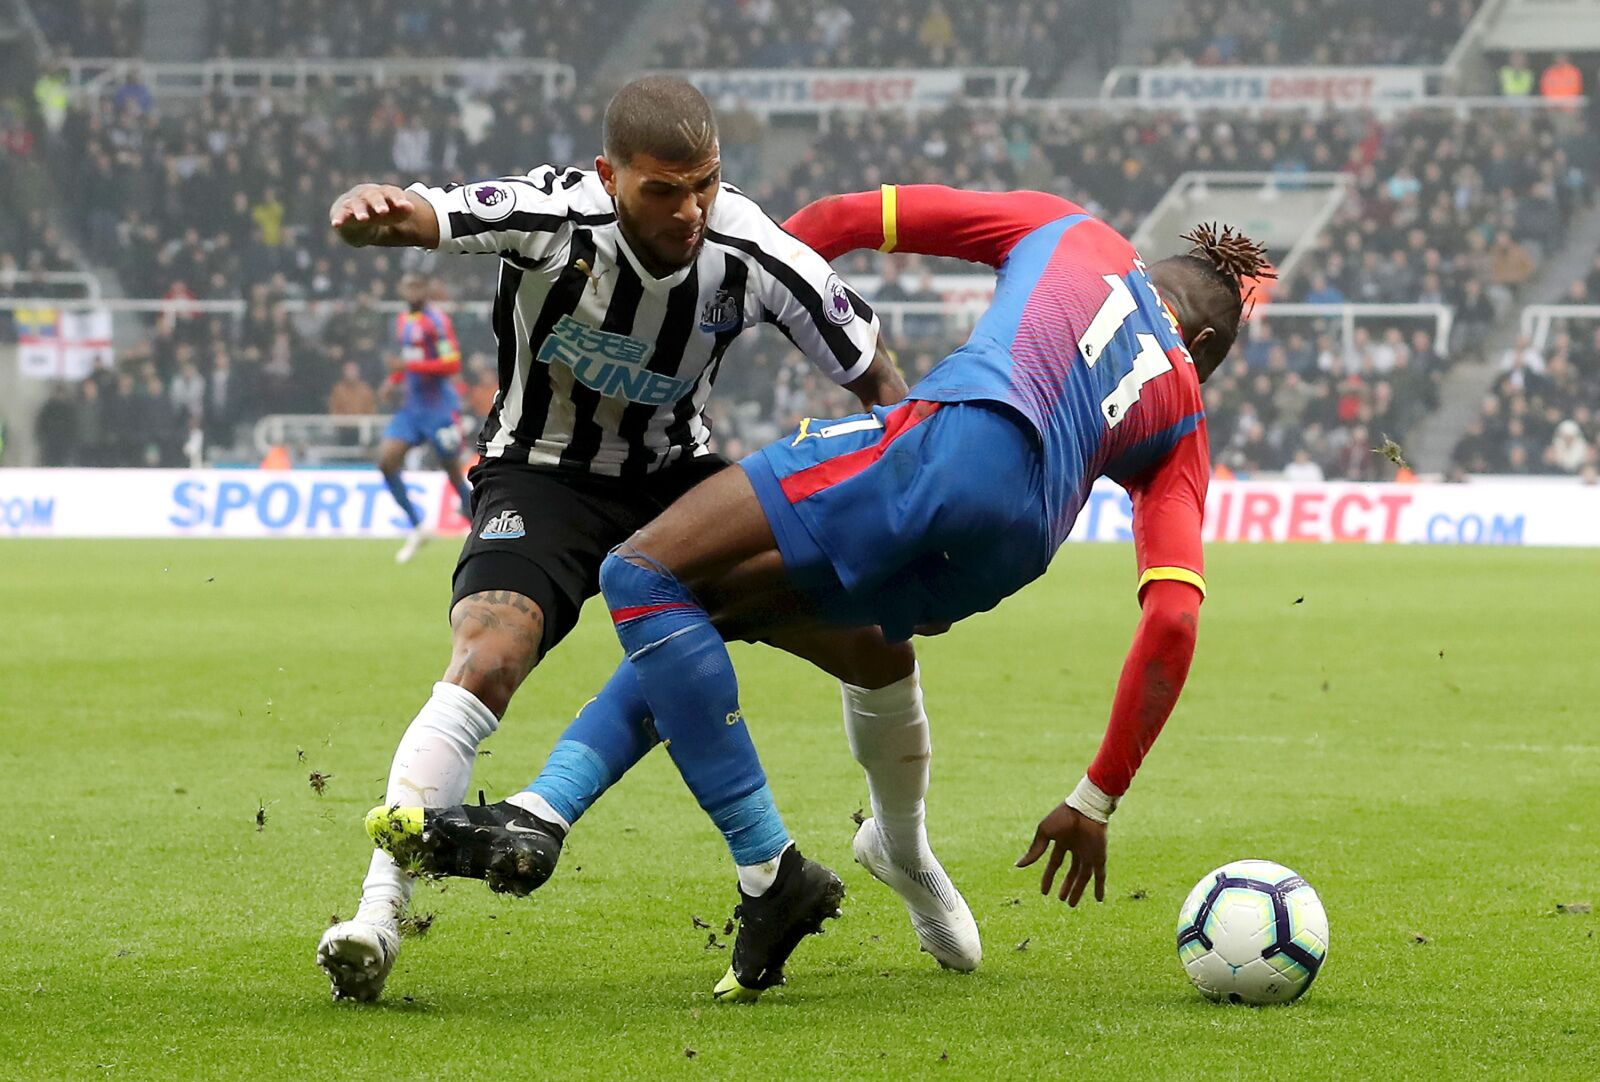 Looking back on the 2018/19 Newcastle-Crystal Palace matches